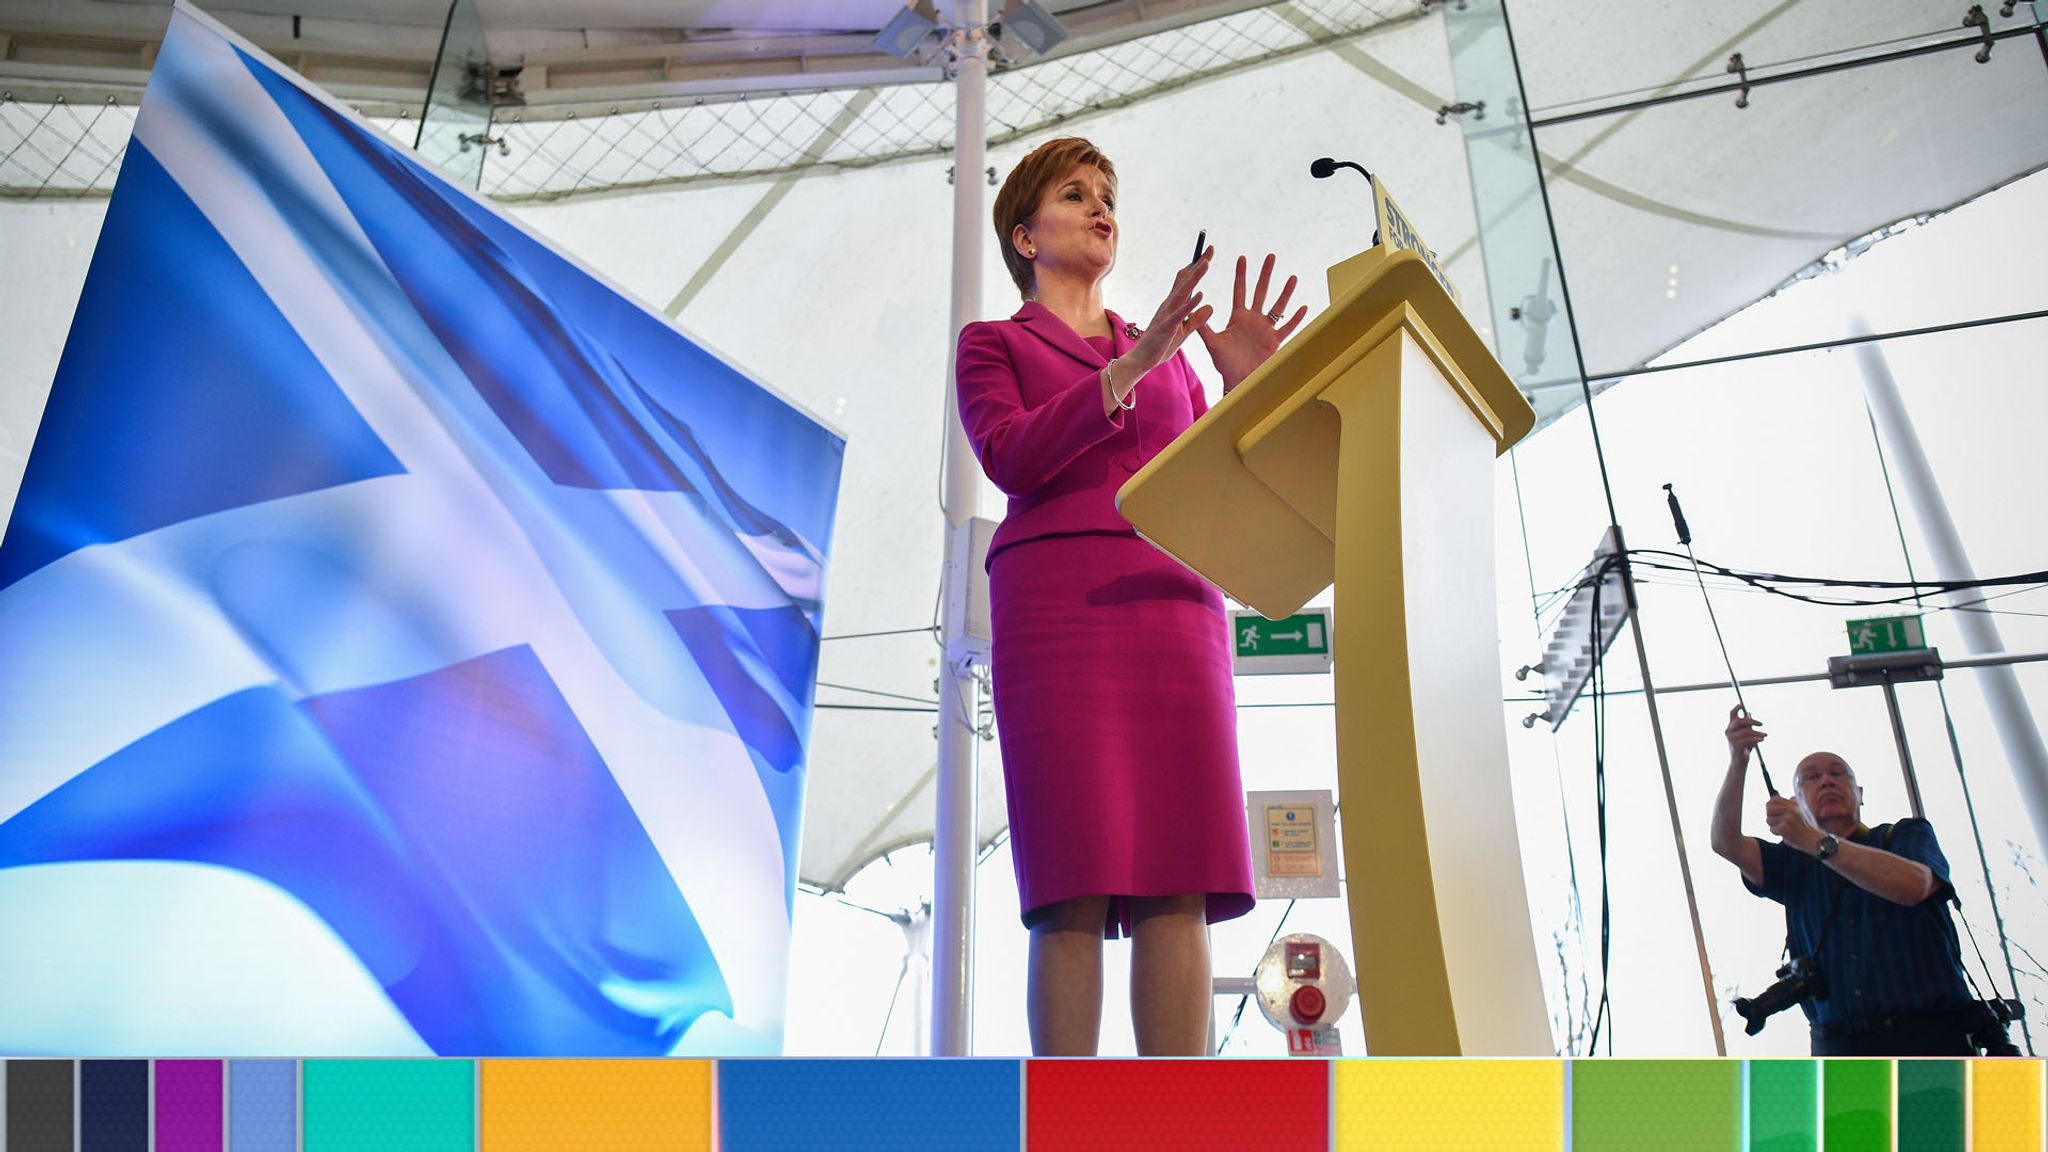 General election: Sturgeon confident of Corbyn deal under hung parliament